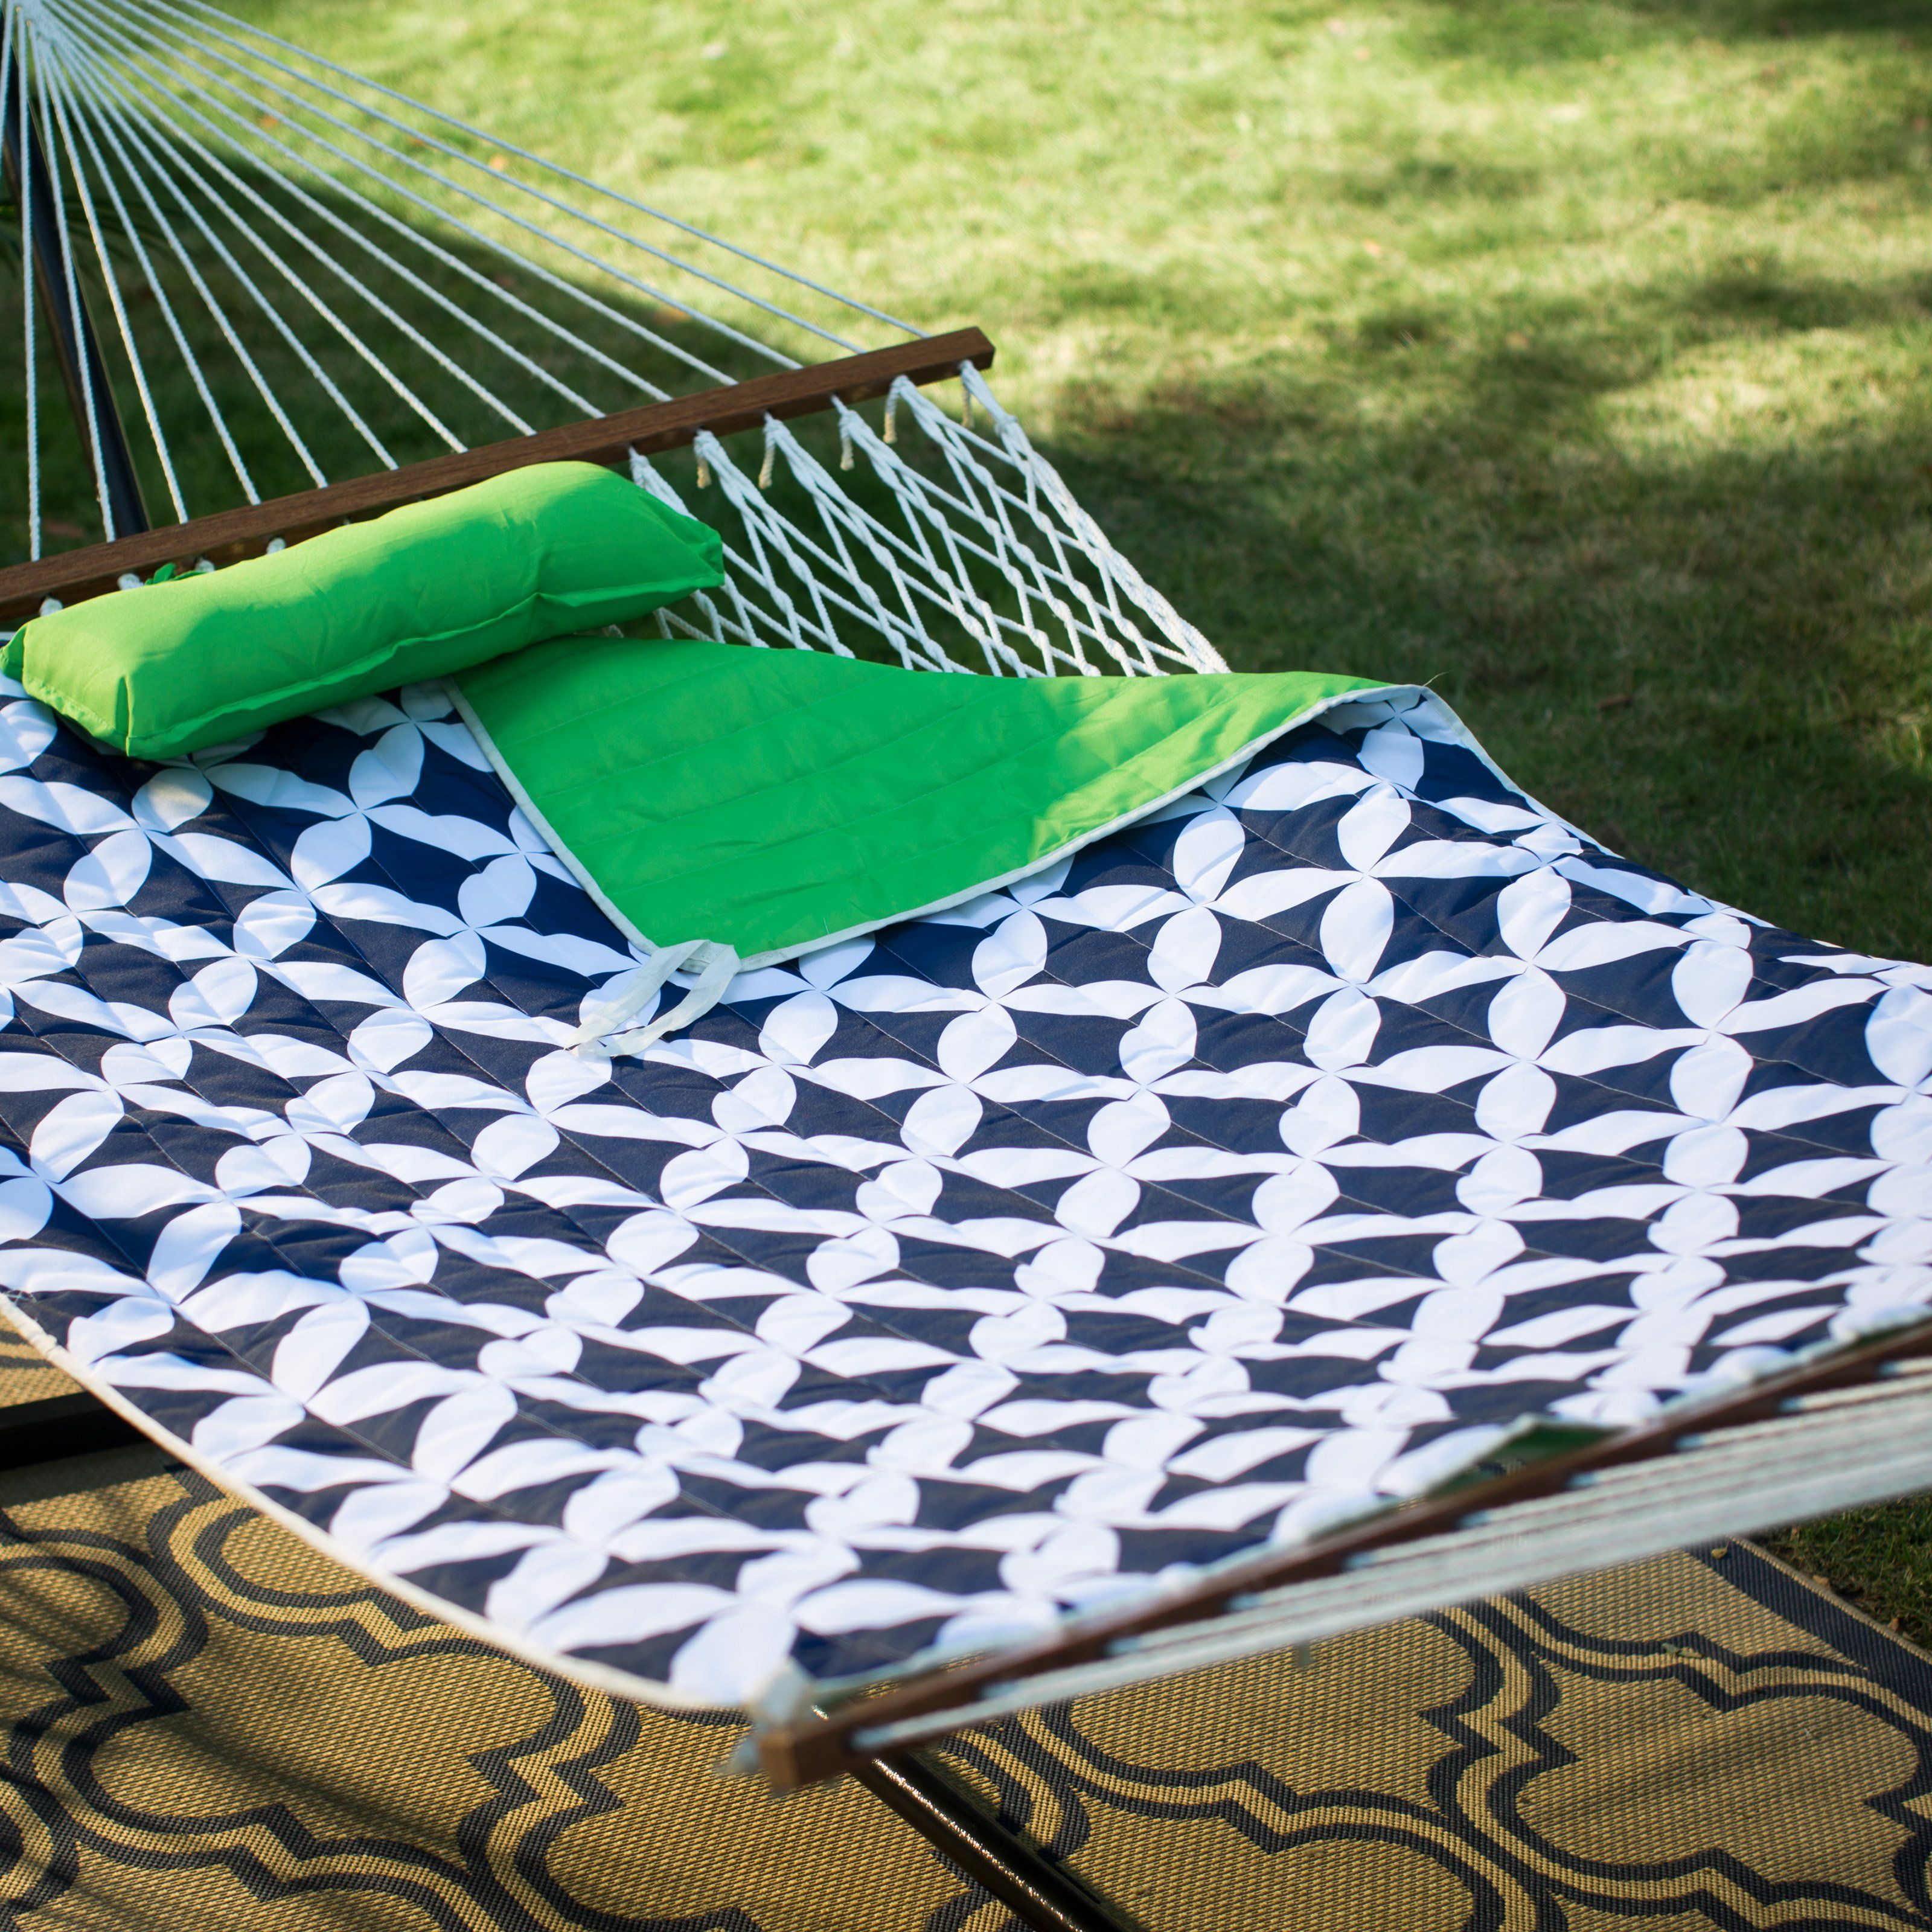 Island Bay 11 Ft Cotton Rope Double Hammock With Metal Stand Deluxe Set Green Navy From Hayneedle Com Double Hammock Hammock Rope Hammock